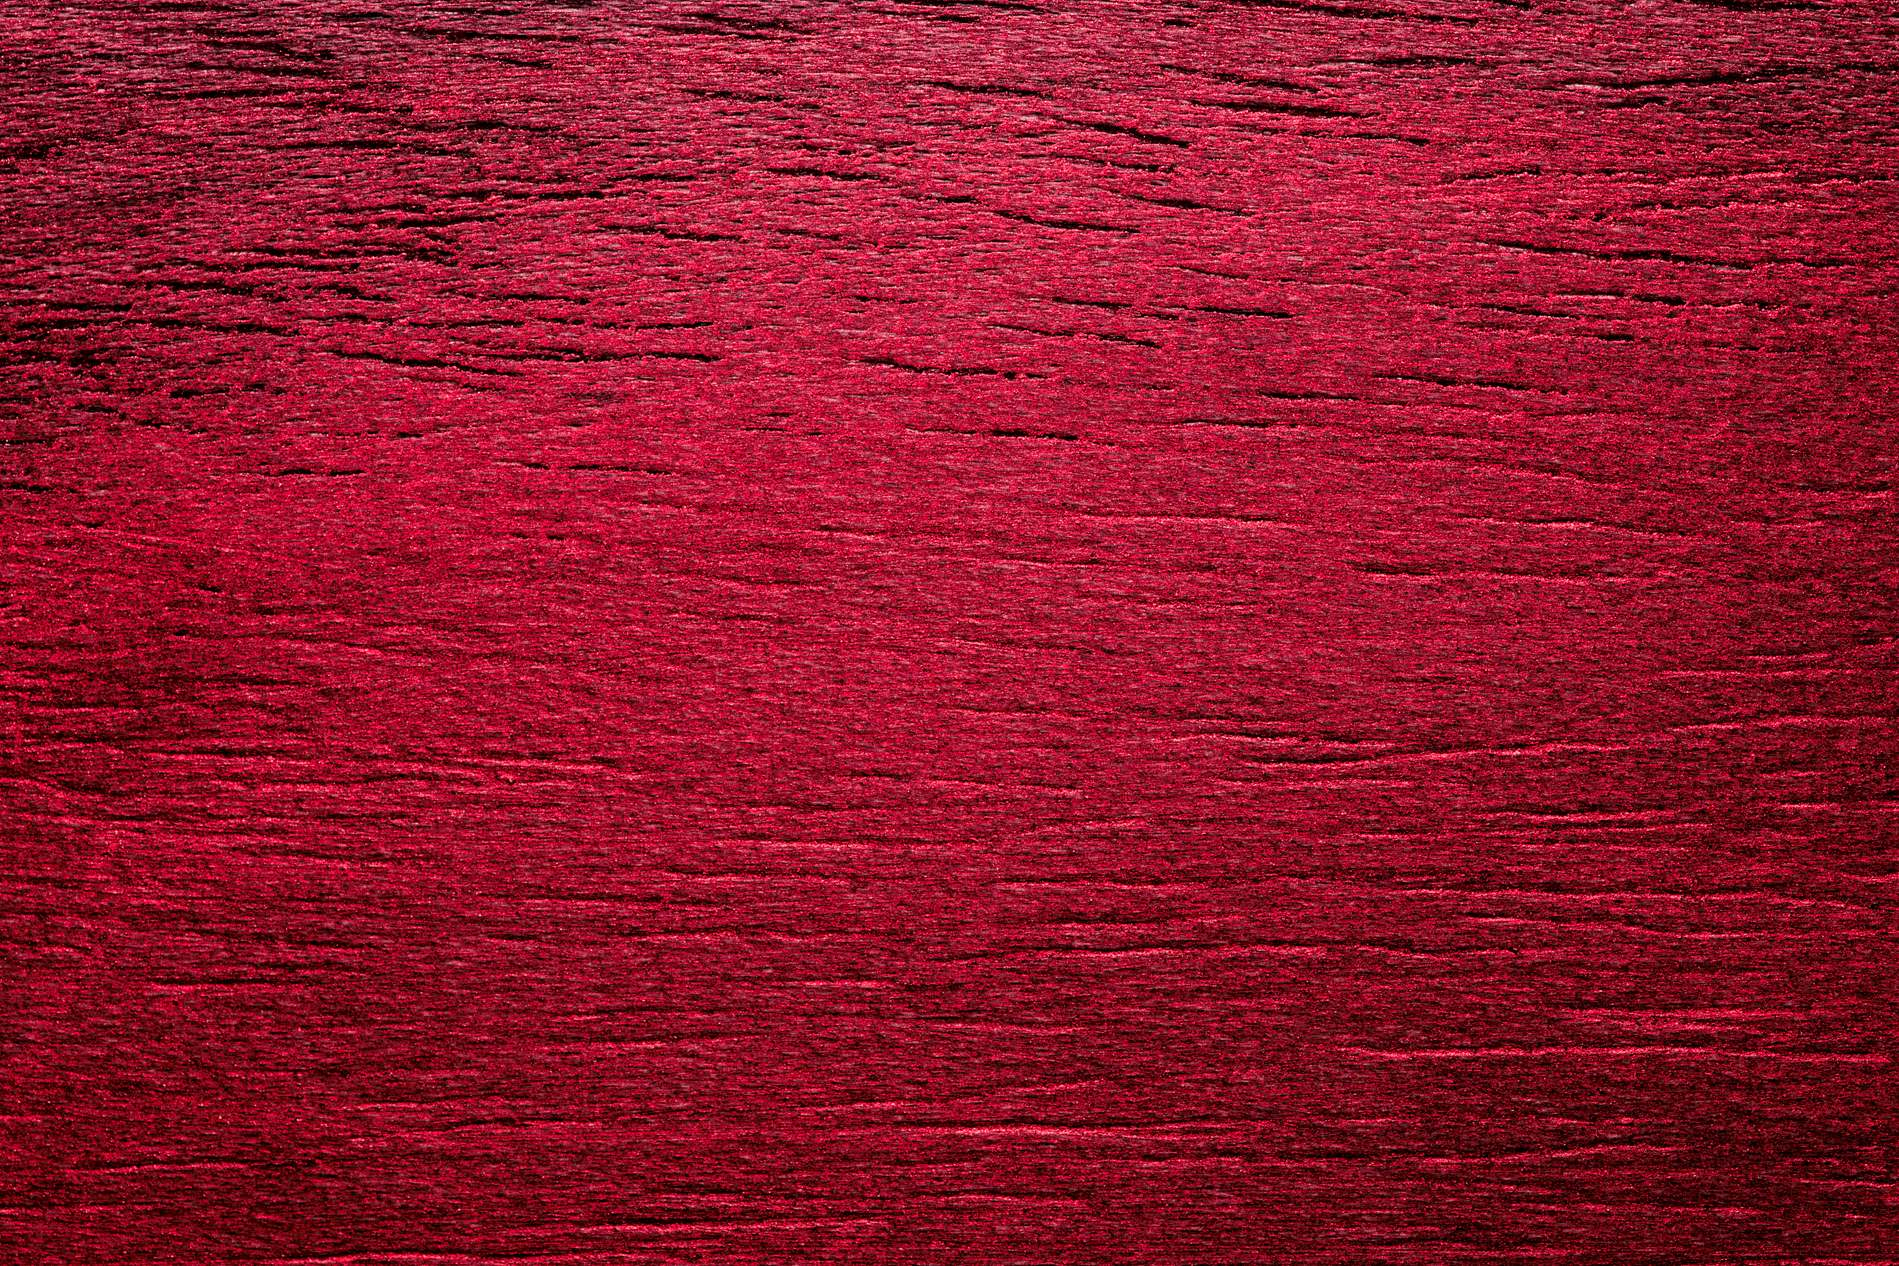 Vintage Red Wall Texture Background